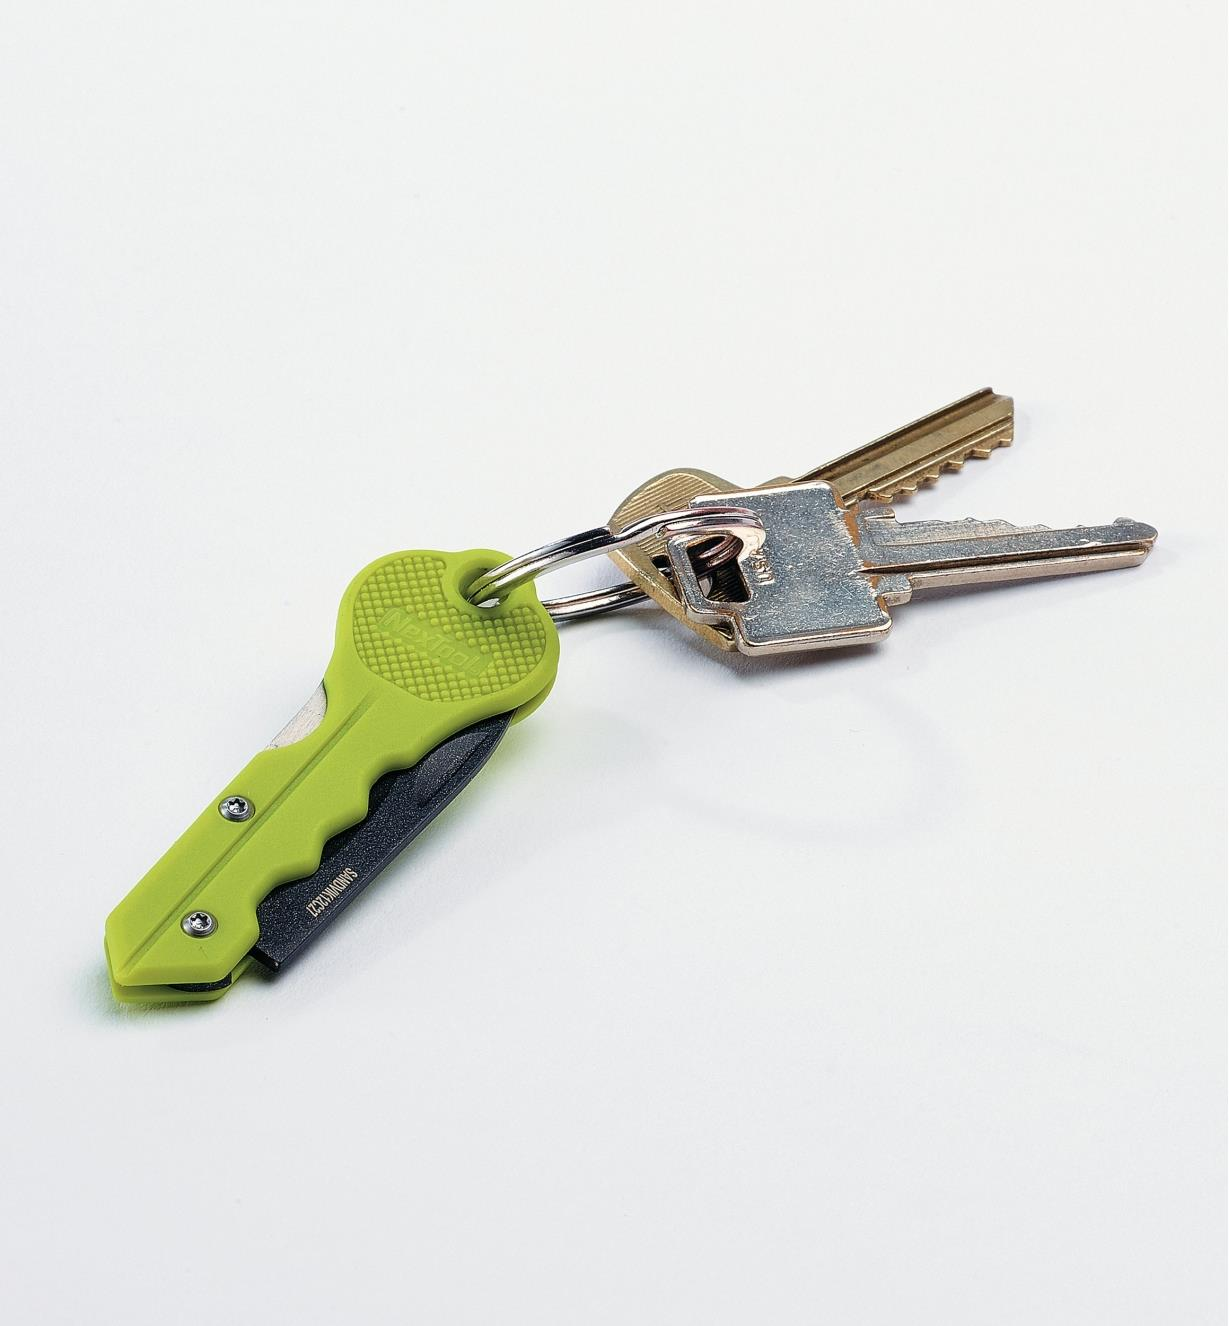 45K2244 - Keychain Safety Cutter